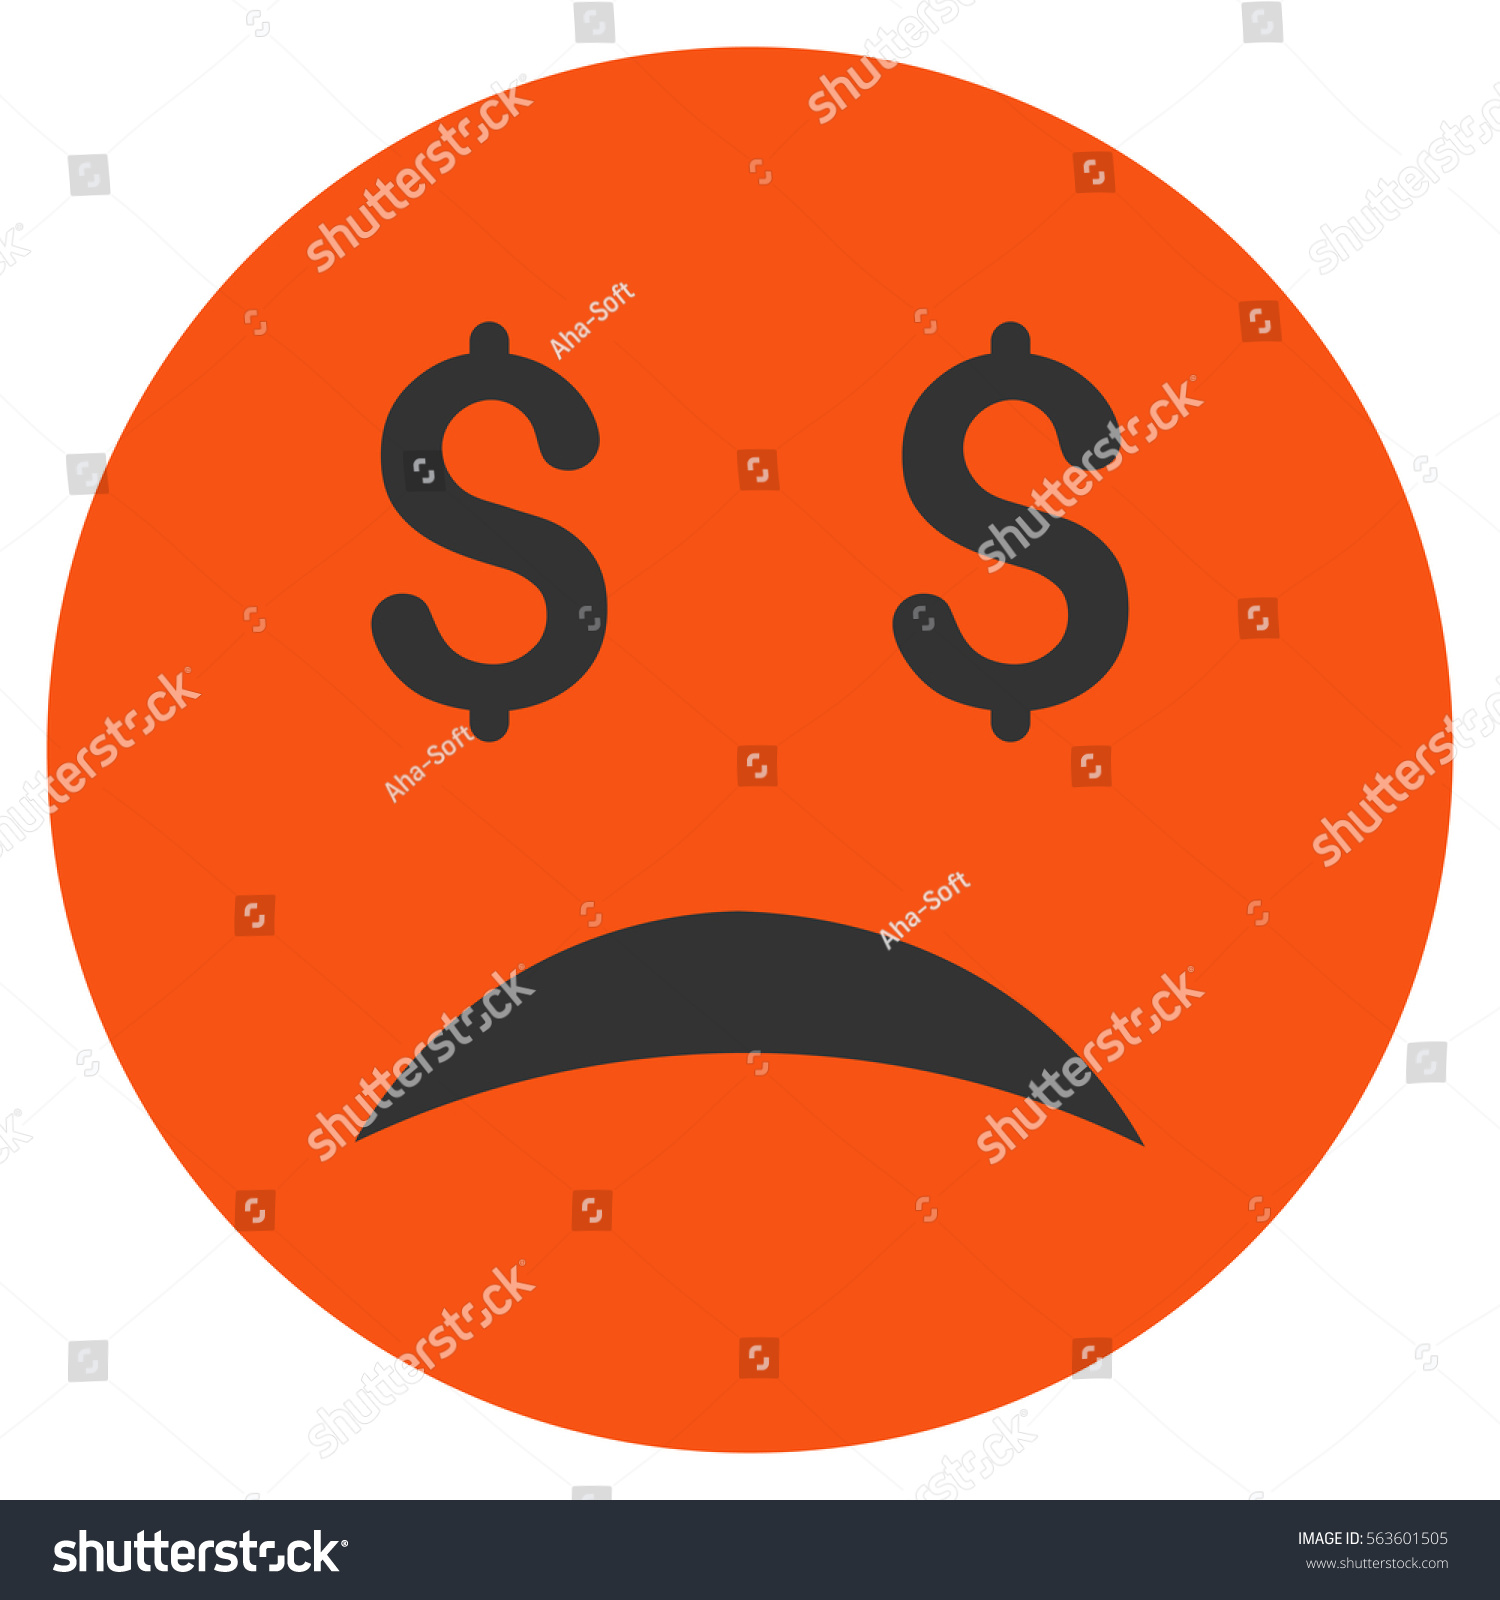 Bankrupt frowning face raster pictogram style stock illustration bankrupt frowning face raster pictogram style is flat graphic symbol buycottarizona Gallery